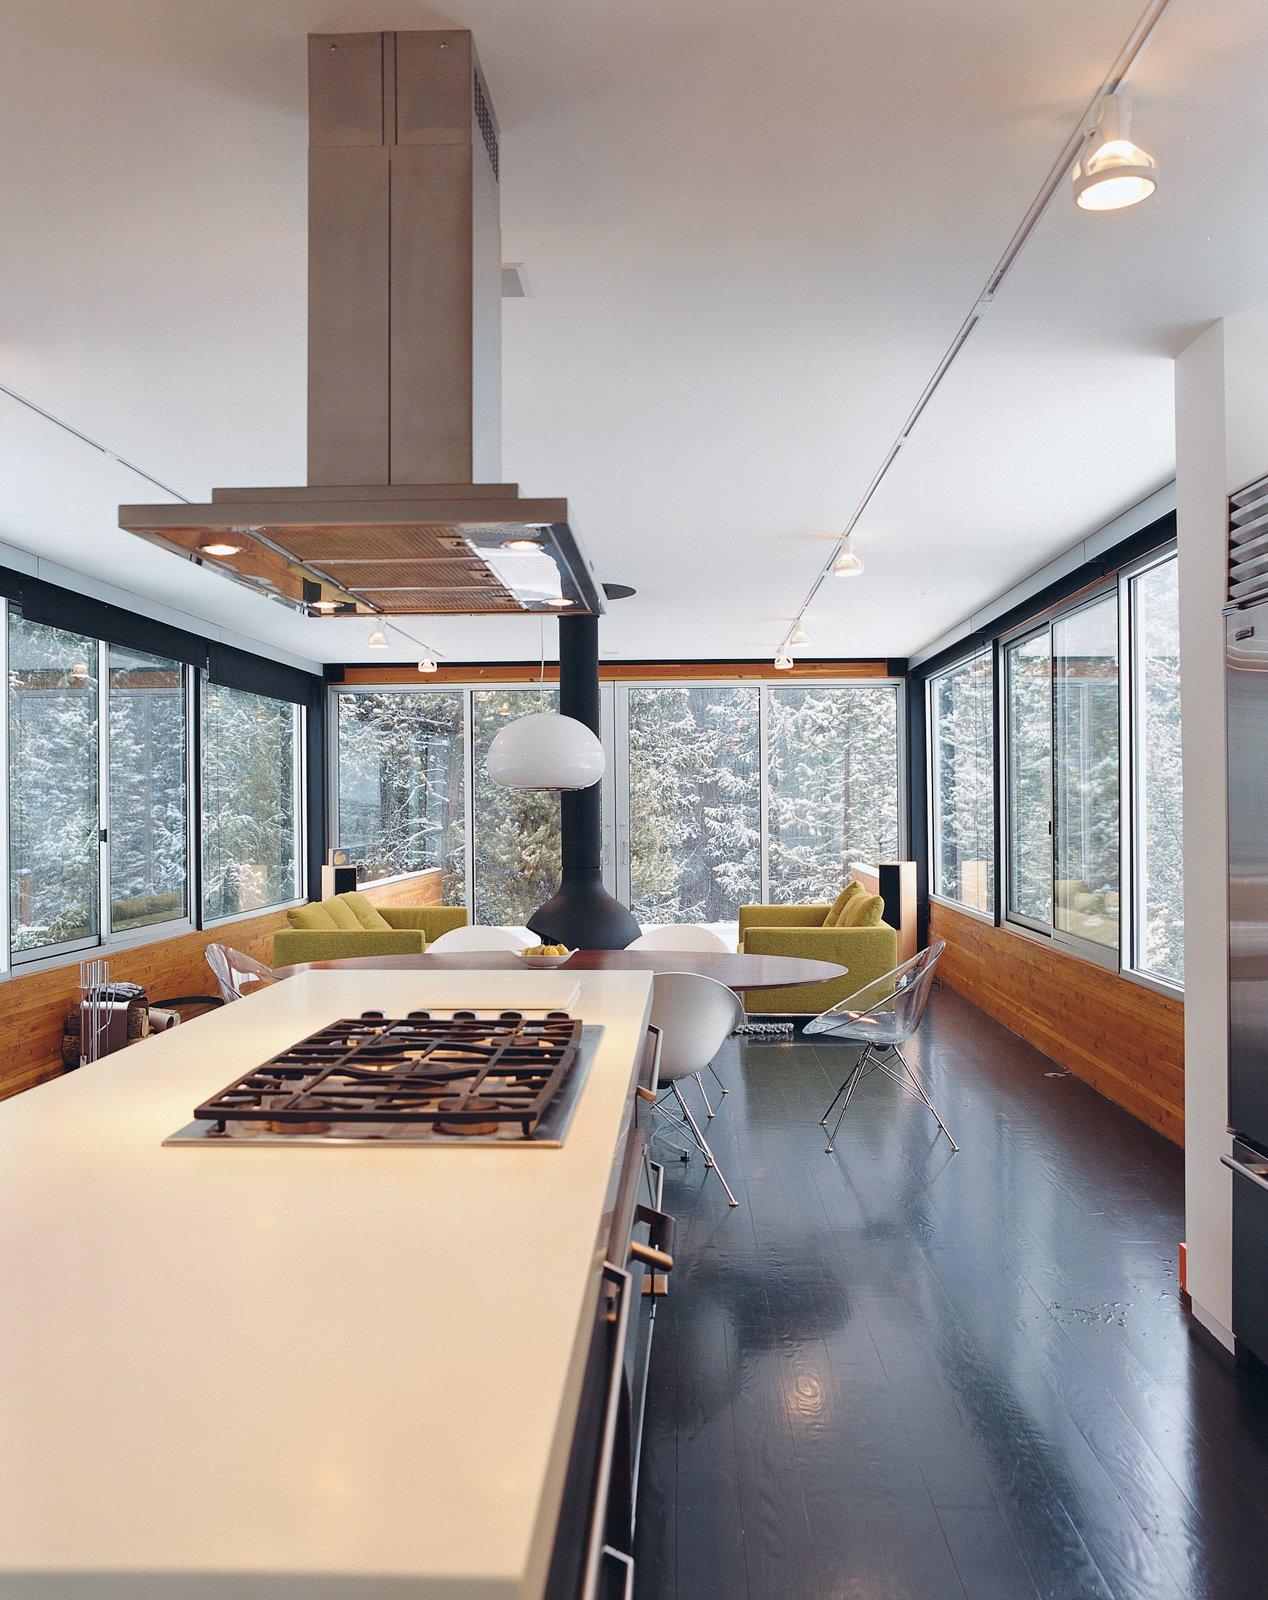 Fully enclosed by glass, Hiller's kitchen and living room give the feeling of being in a tree house. Tagged: Kitchen, Range, and Range Hood. Ski Lift - Photo 4 of 6